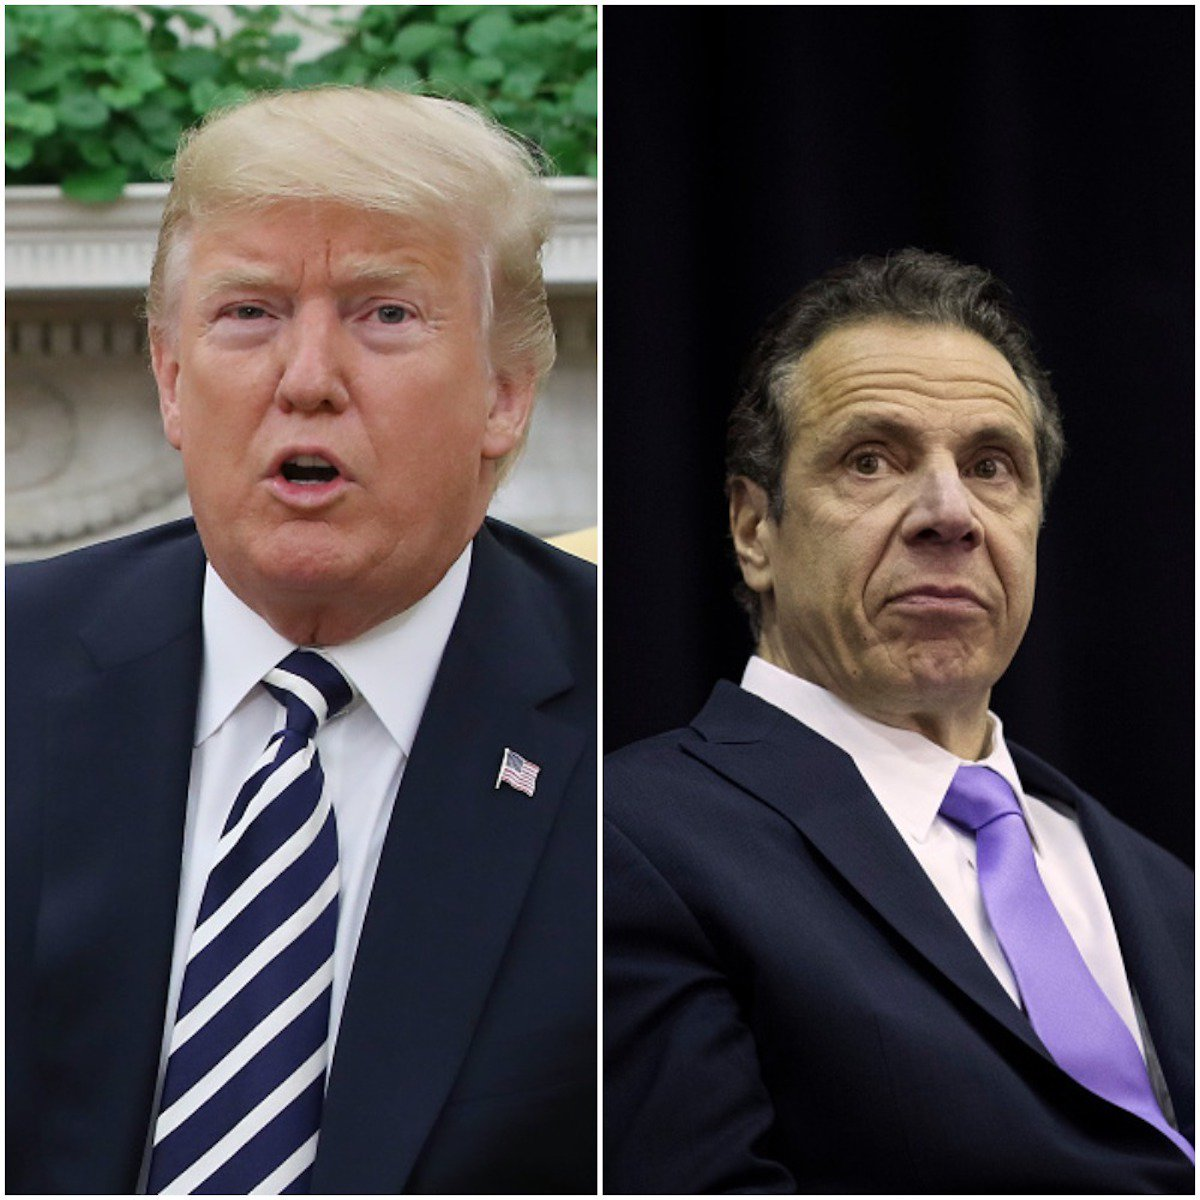 Trump Slams Cuomo For America 'Was Never That Great' Comments https://t.co/uoA8SSDVF7 via @DailyCaller https://t.co/YySZru5Z5s